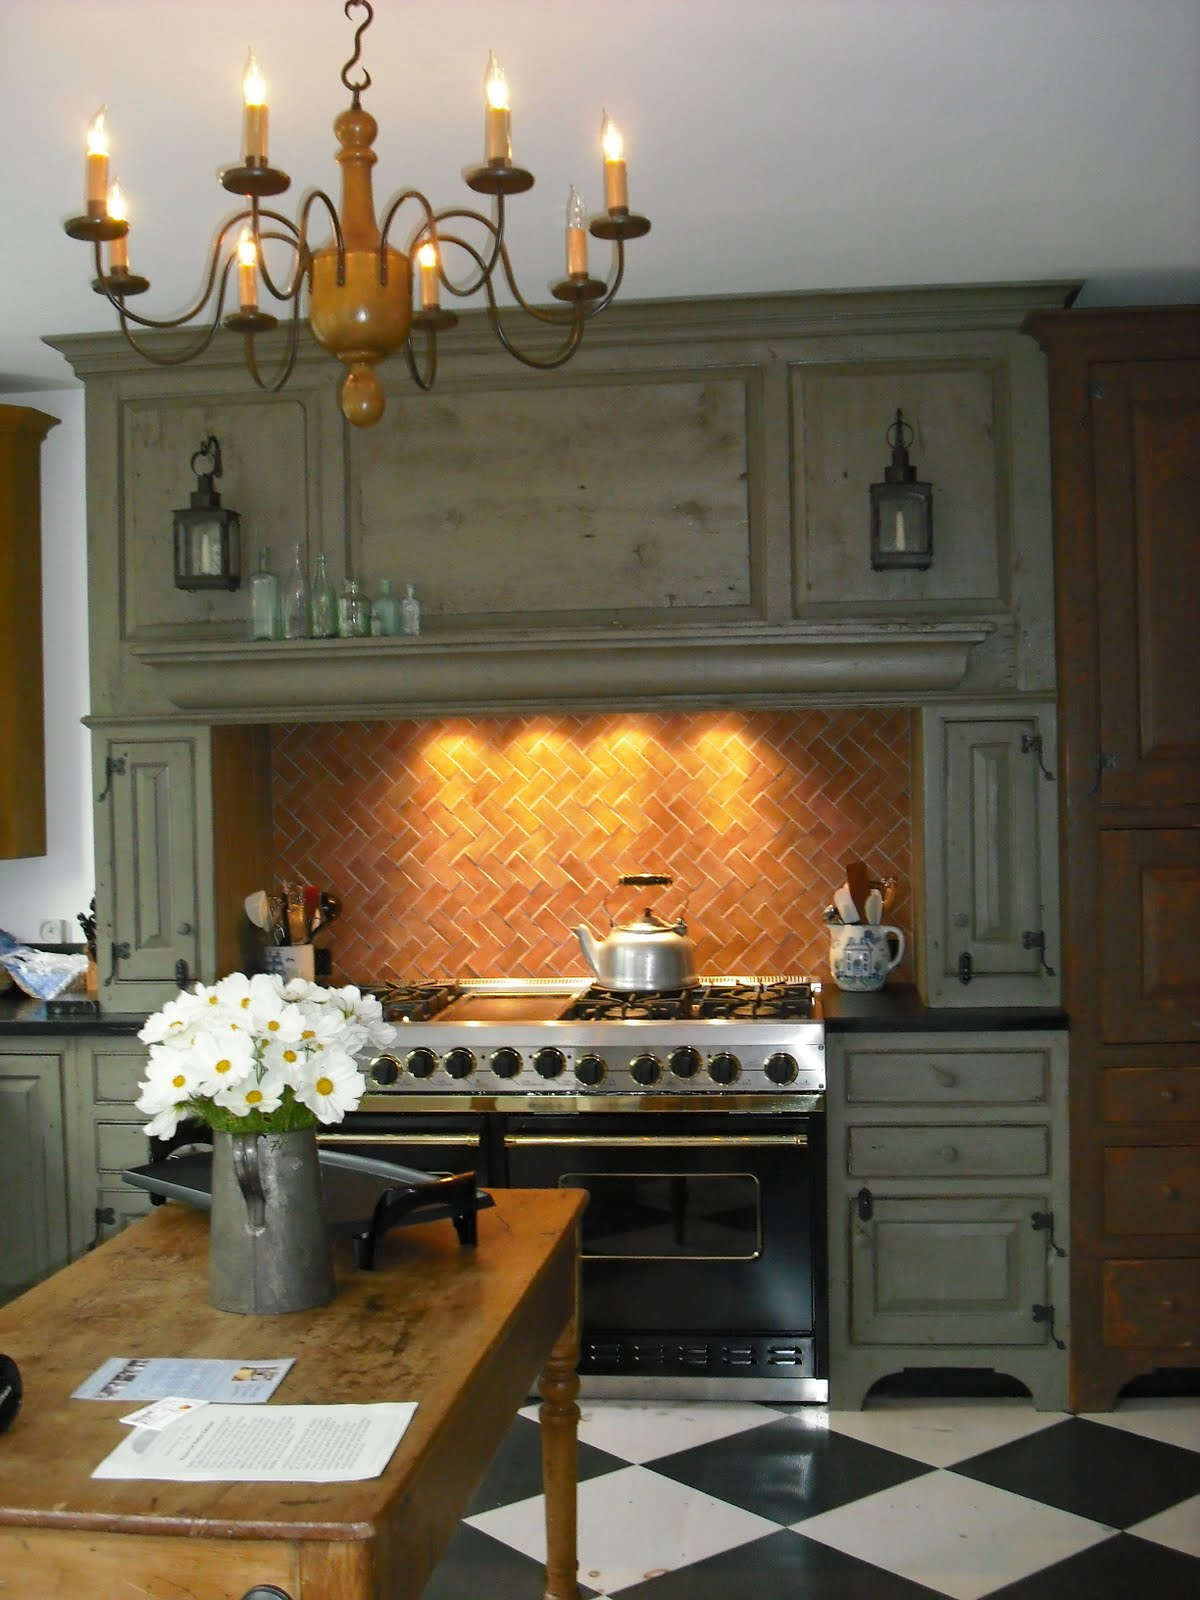 Timeless kitchen cabinetry nantucket kitchen for Nantucket style kitchen